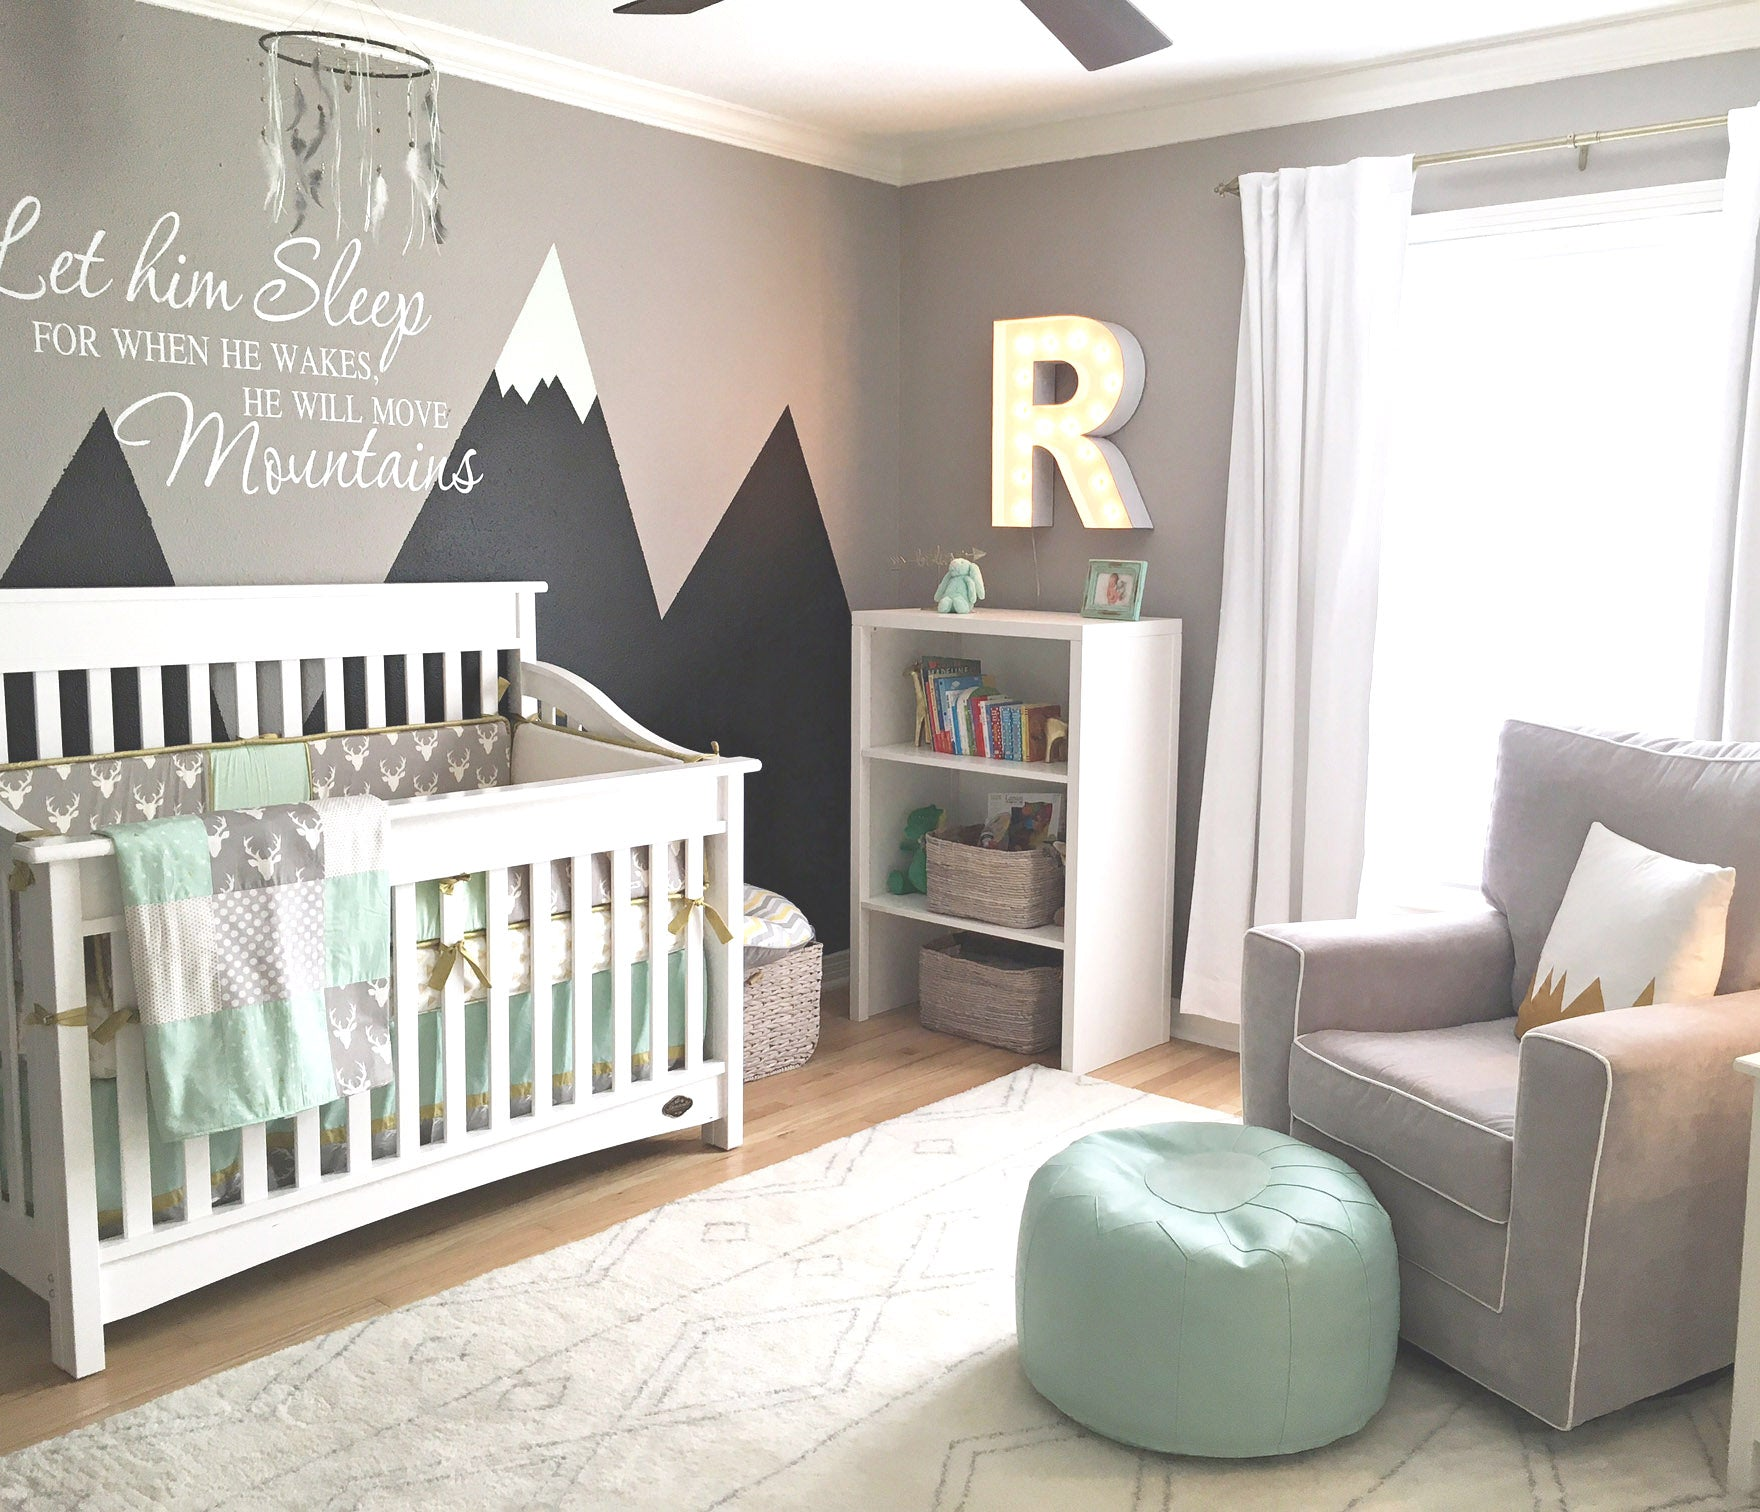 Reyn's Rocky Mountain Woodland Nursery designed by Caden Lane